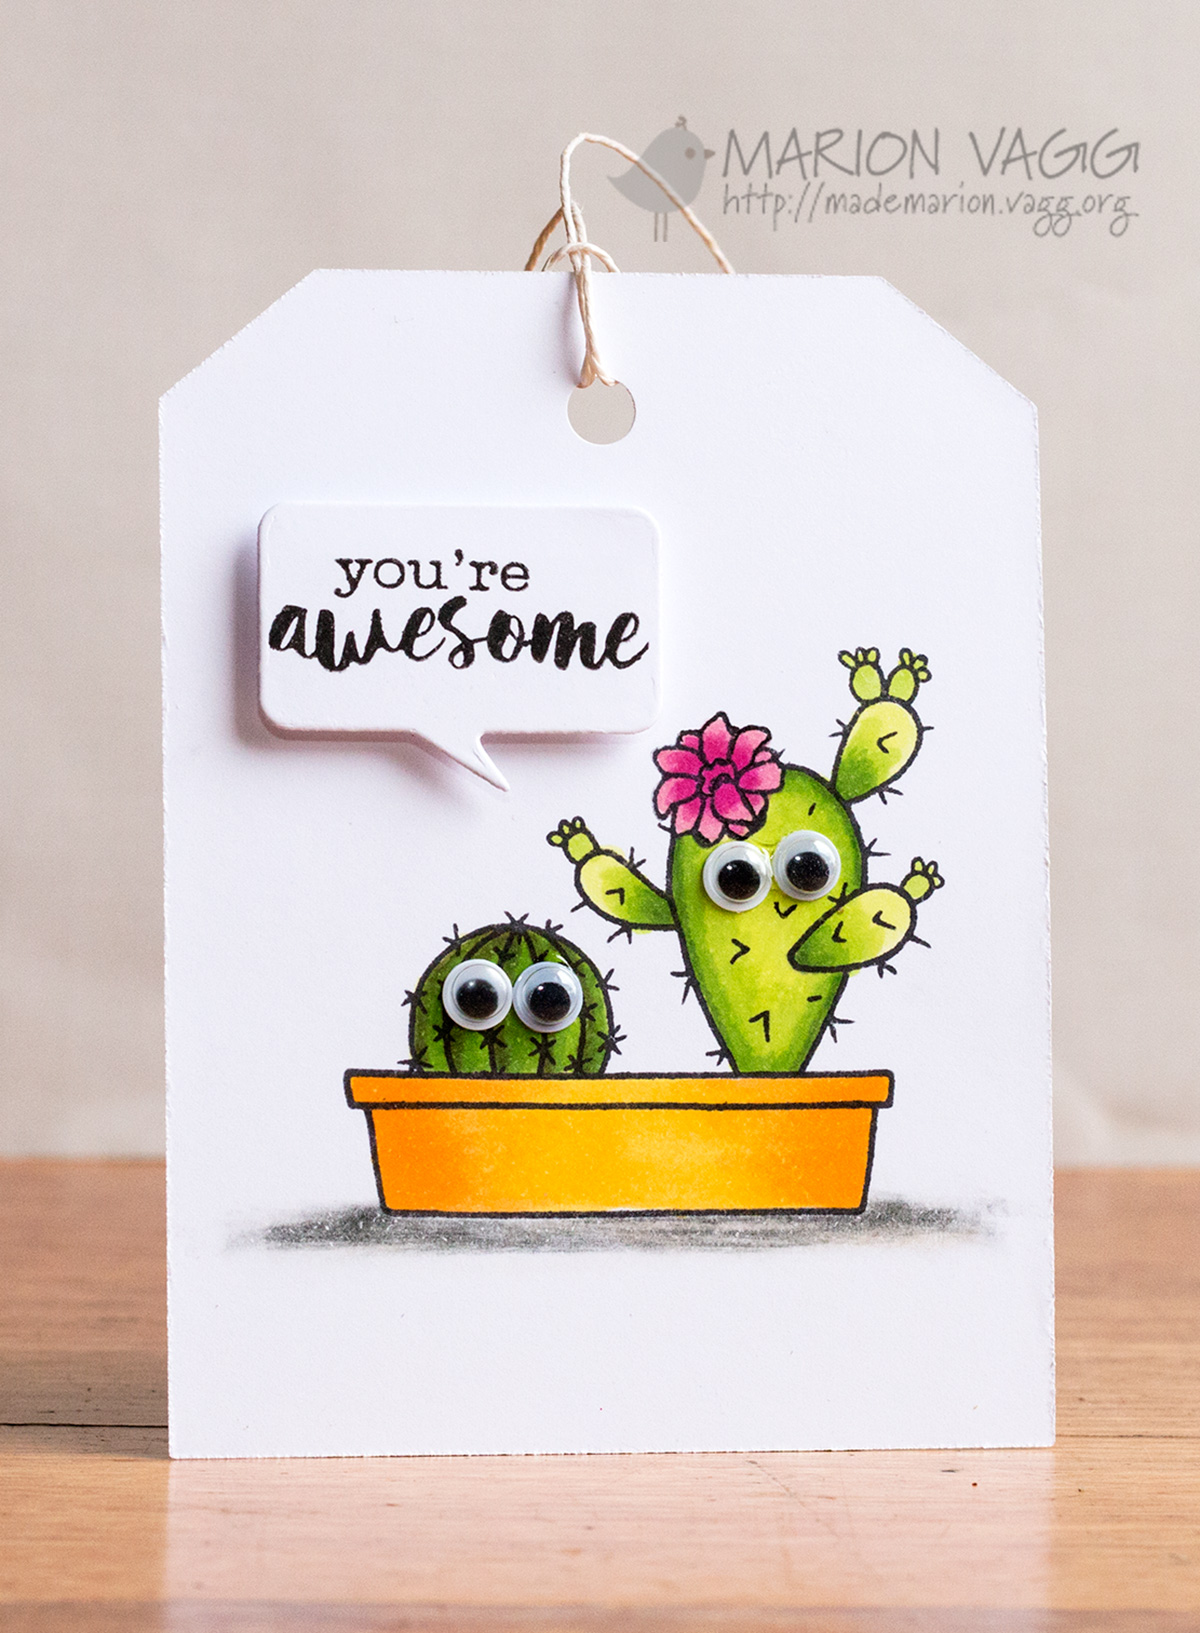 You're awesome - Jane's Doodles | Marion Vagg